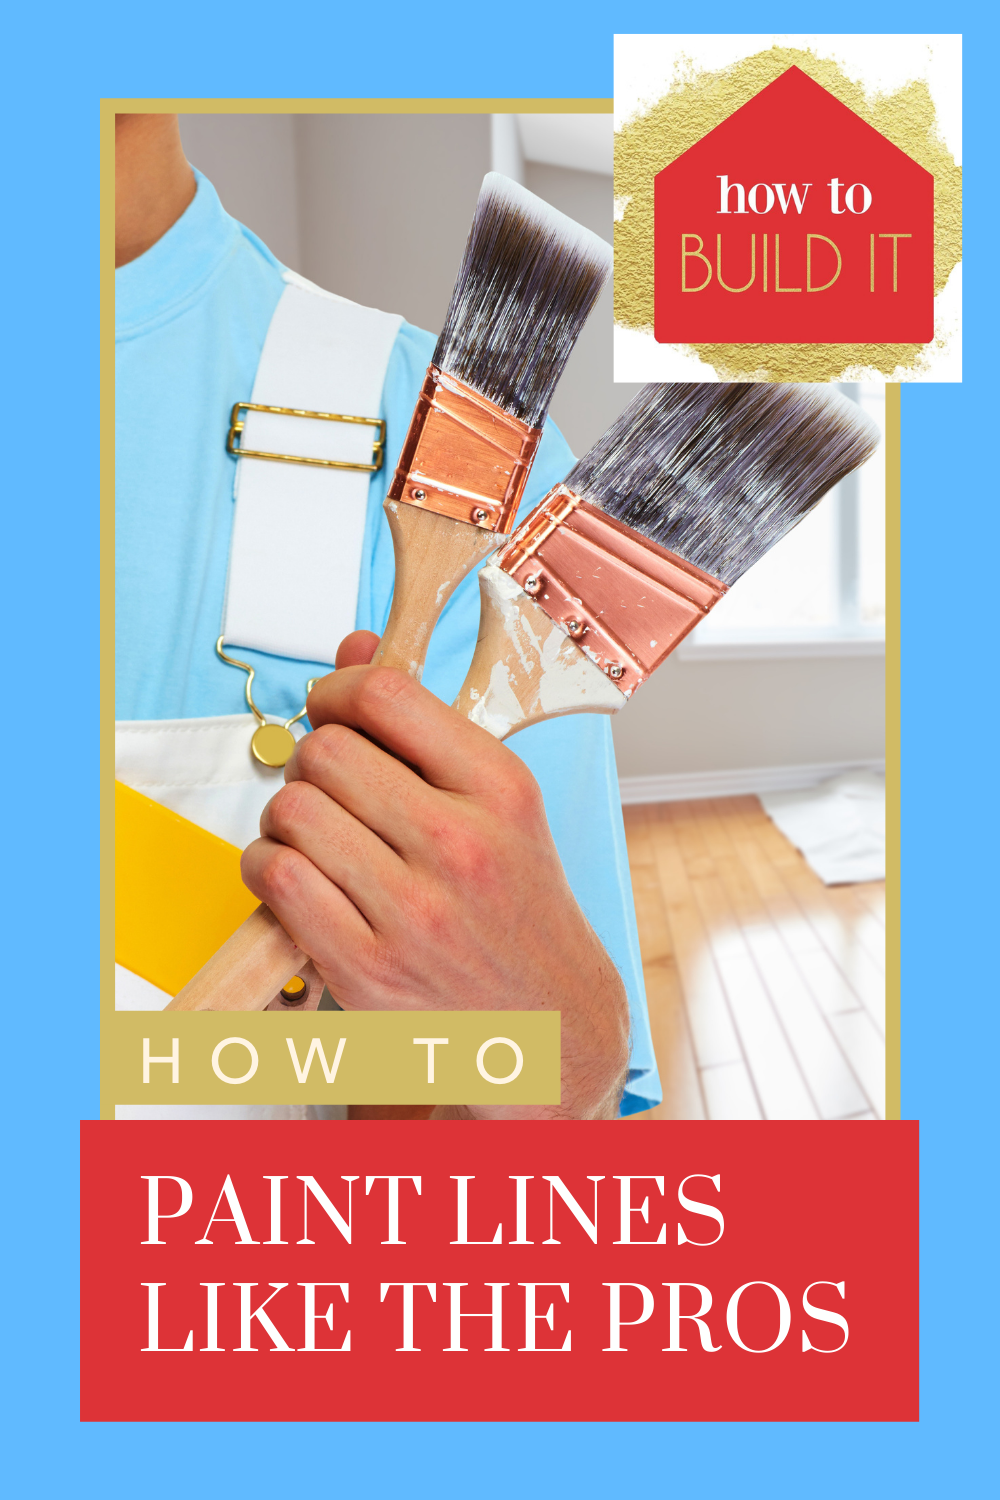 Howtobuildit.org has loads of DIY and home improvement ideas anyone can do! The quickest way to spruce up your home is with a fresh paint job! Find out how you can get a clean line on your next painting project now!